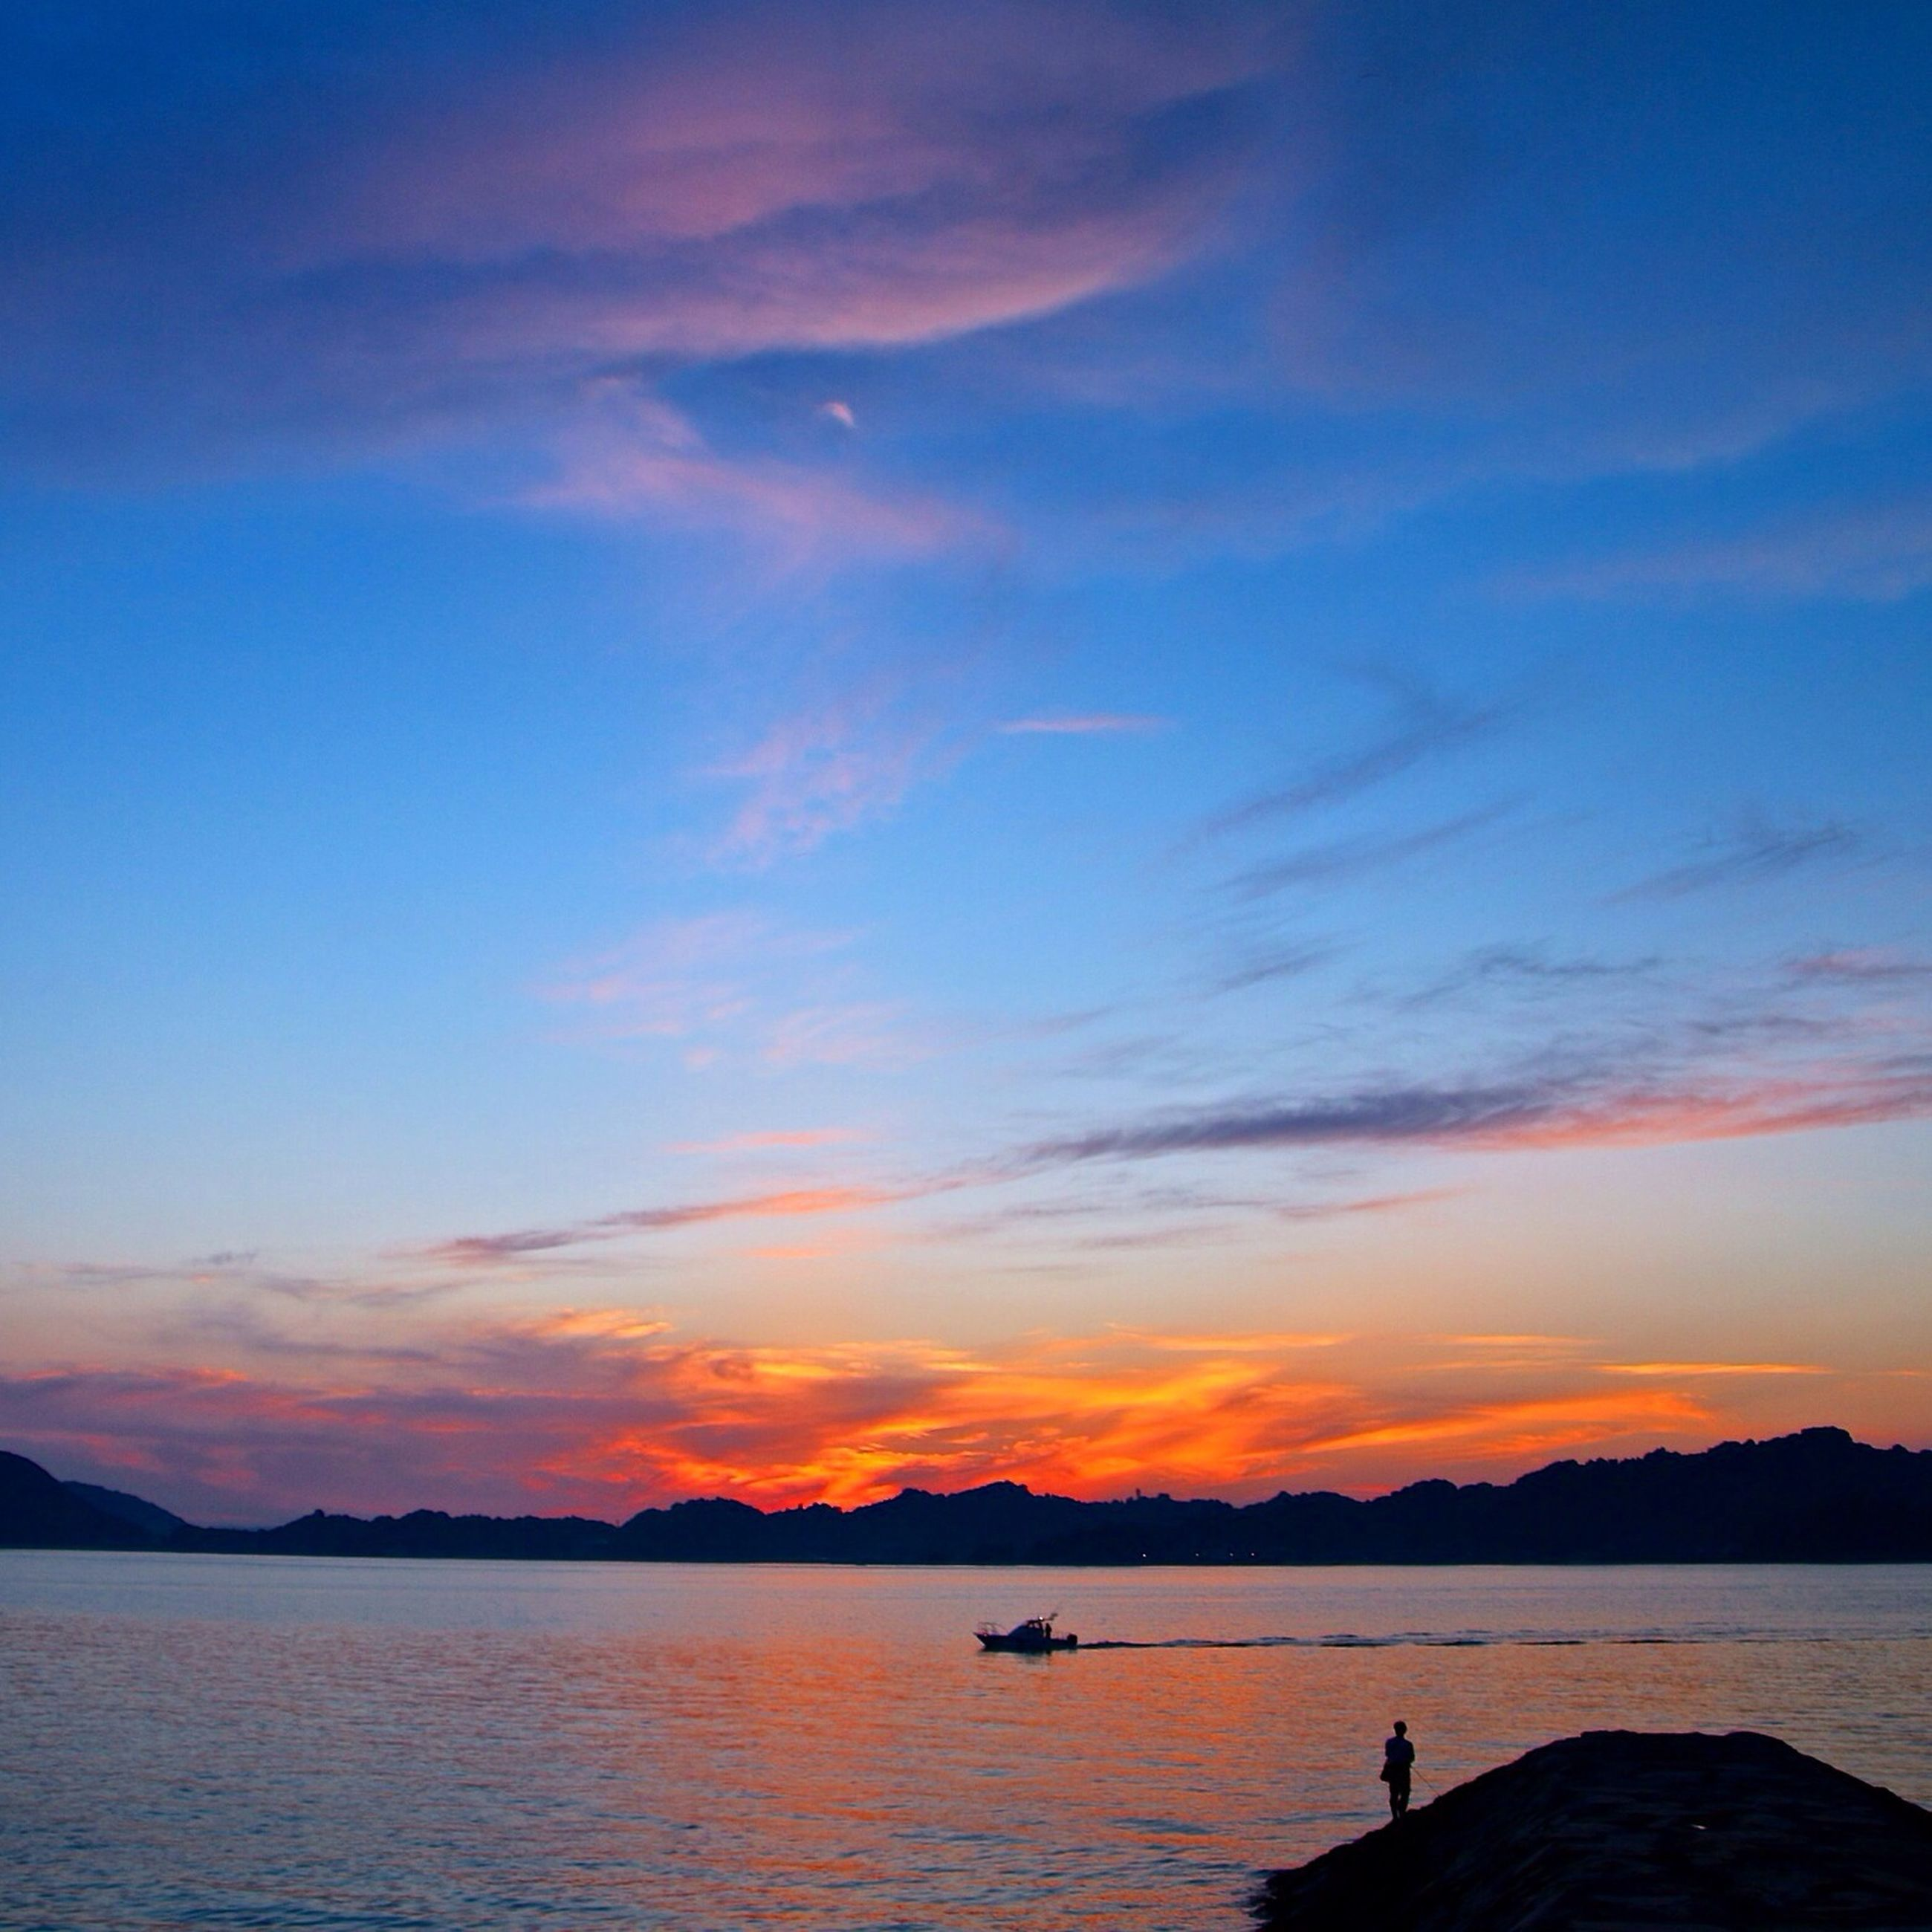 sunset, water, scenics, tranquil scene, sky, tranquility, silhouette, beauty in nature, sea, mountain, waterfront, orange color, idyllic, nature, cloud, cloud - sky, rippled, blue, outdoors, lake